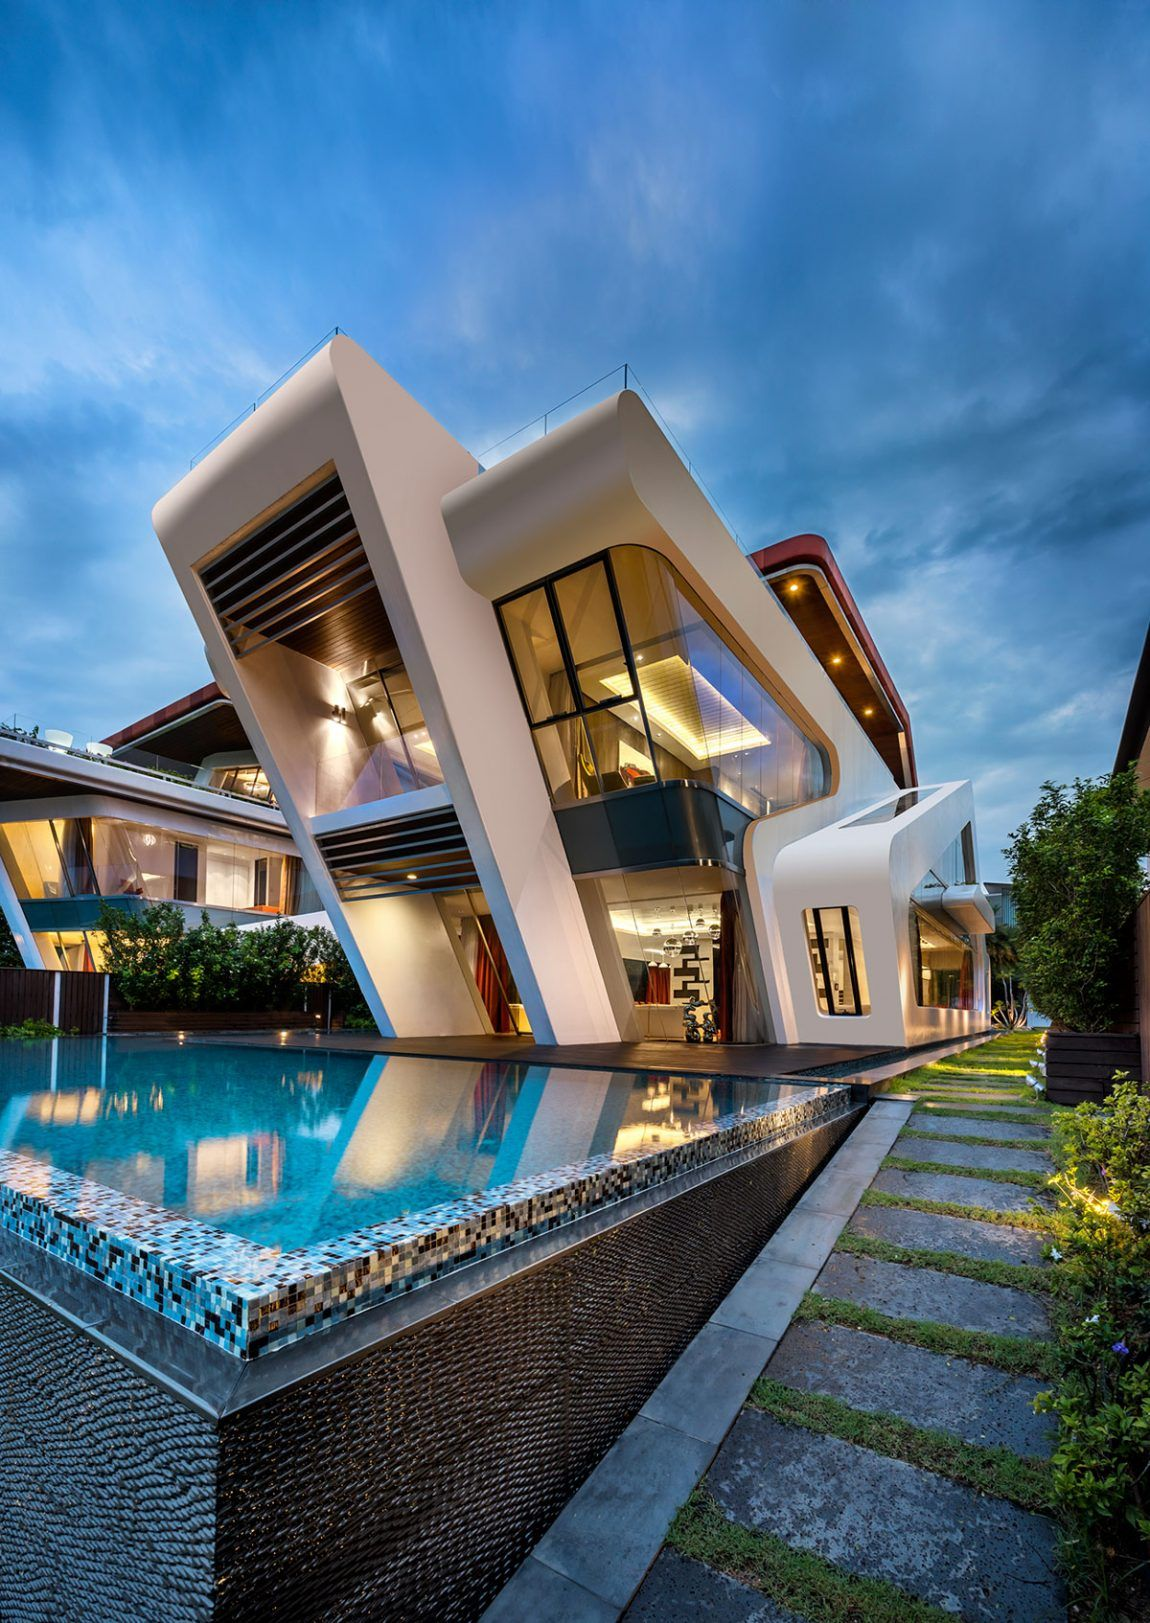 Mercurio design lab create a modern villa in singapore for Modern house architecture